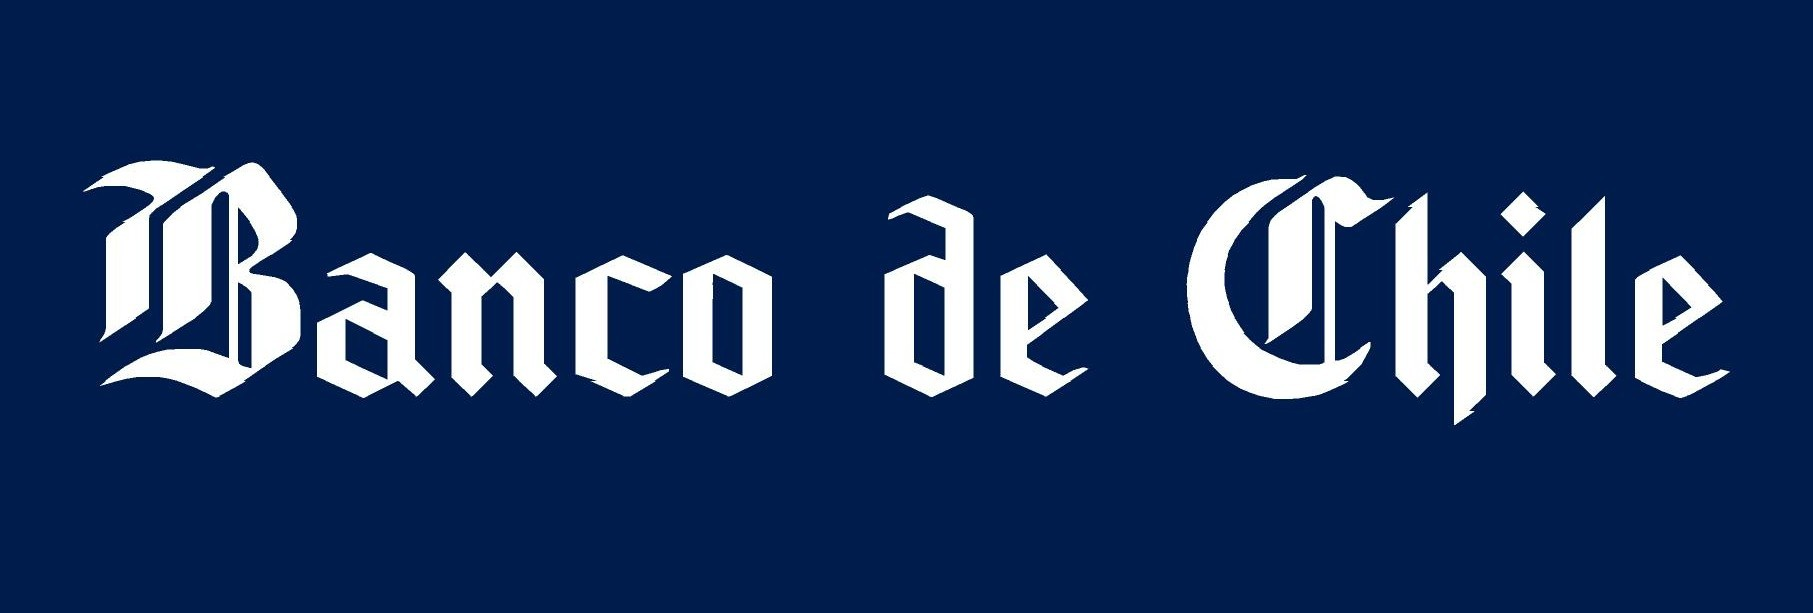 banco   de chile Logo photo - 1